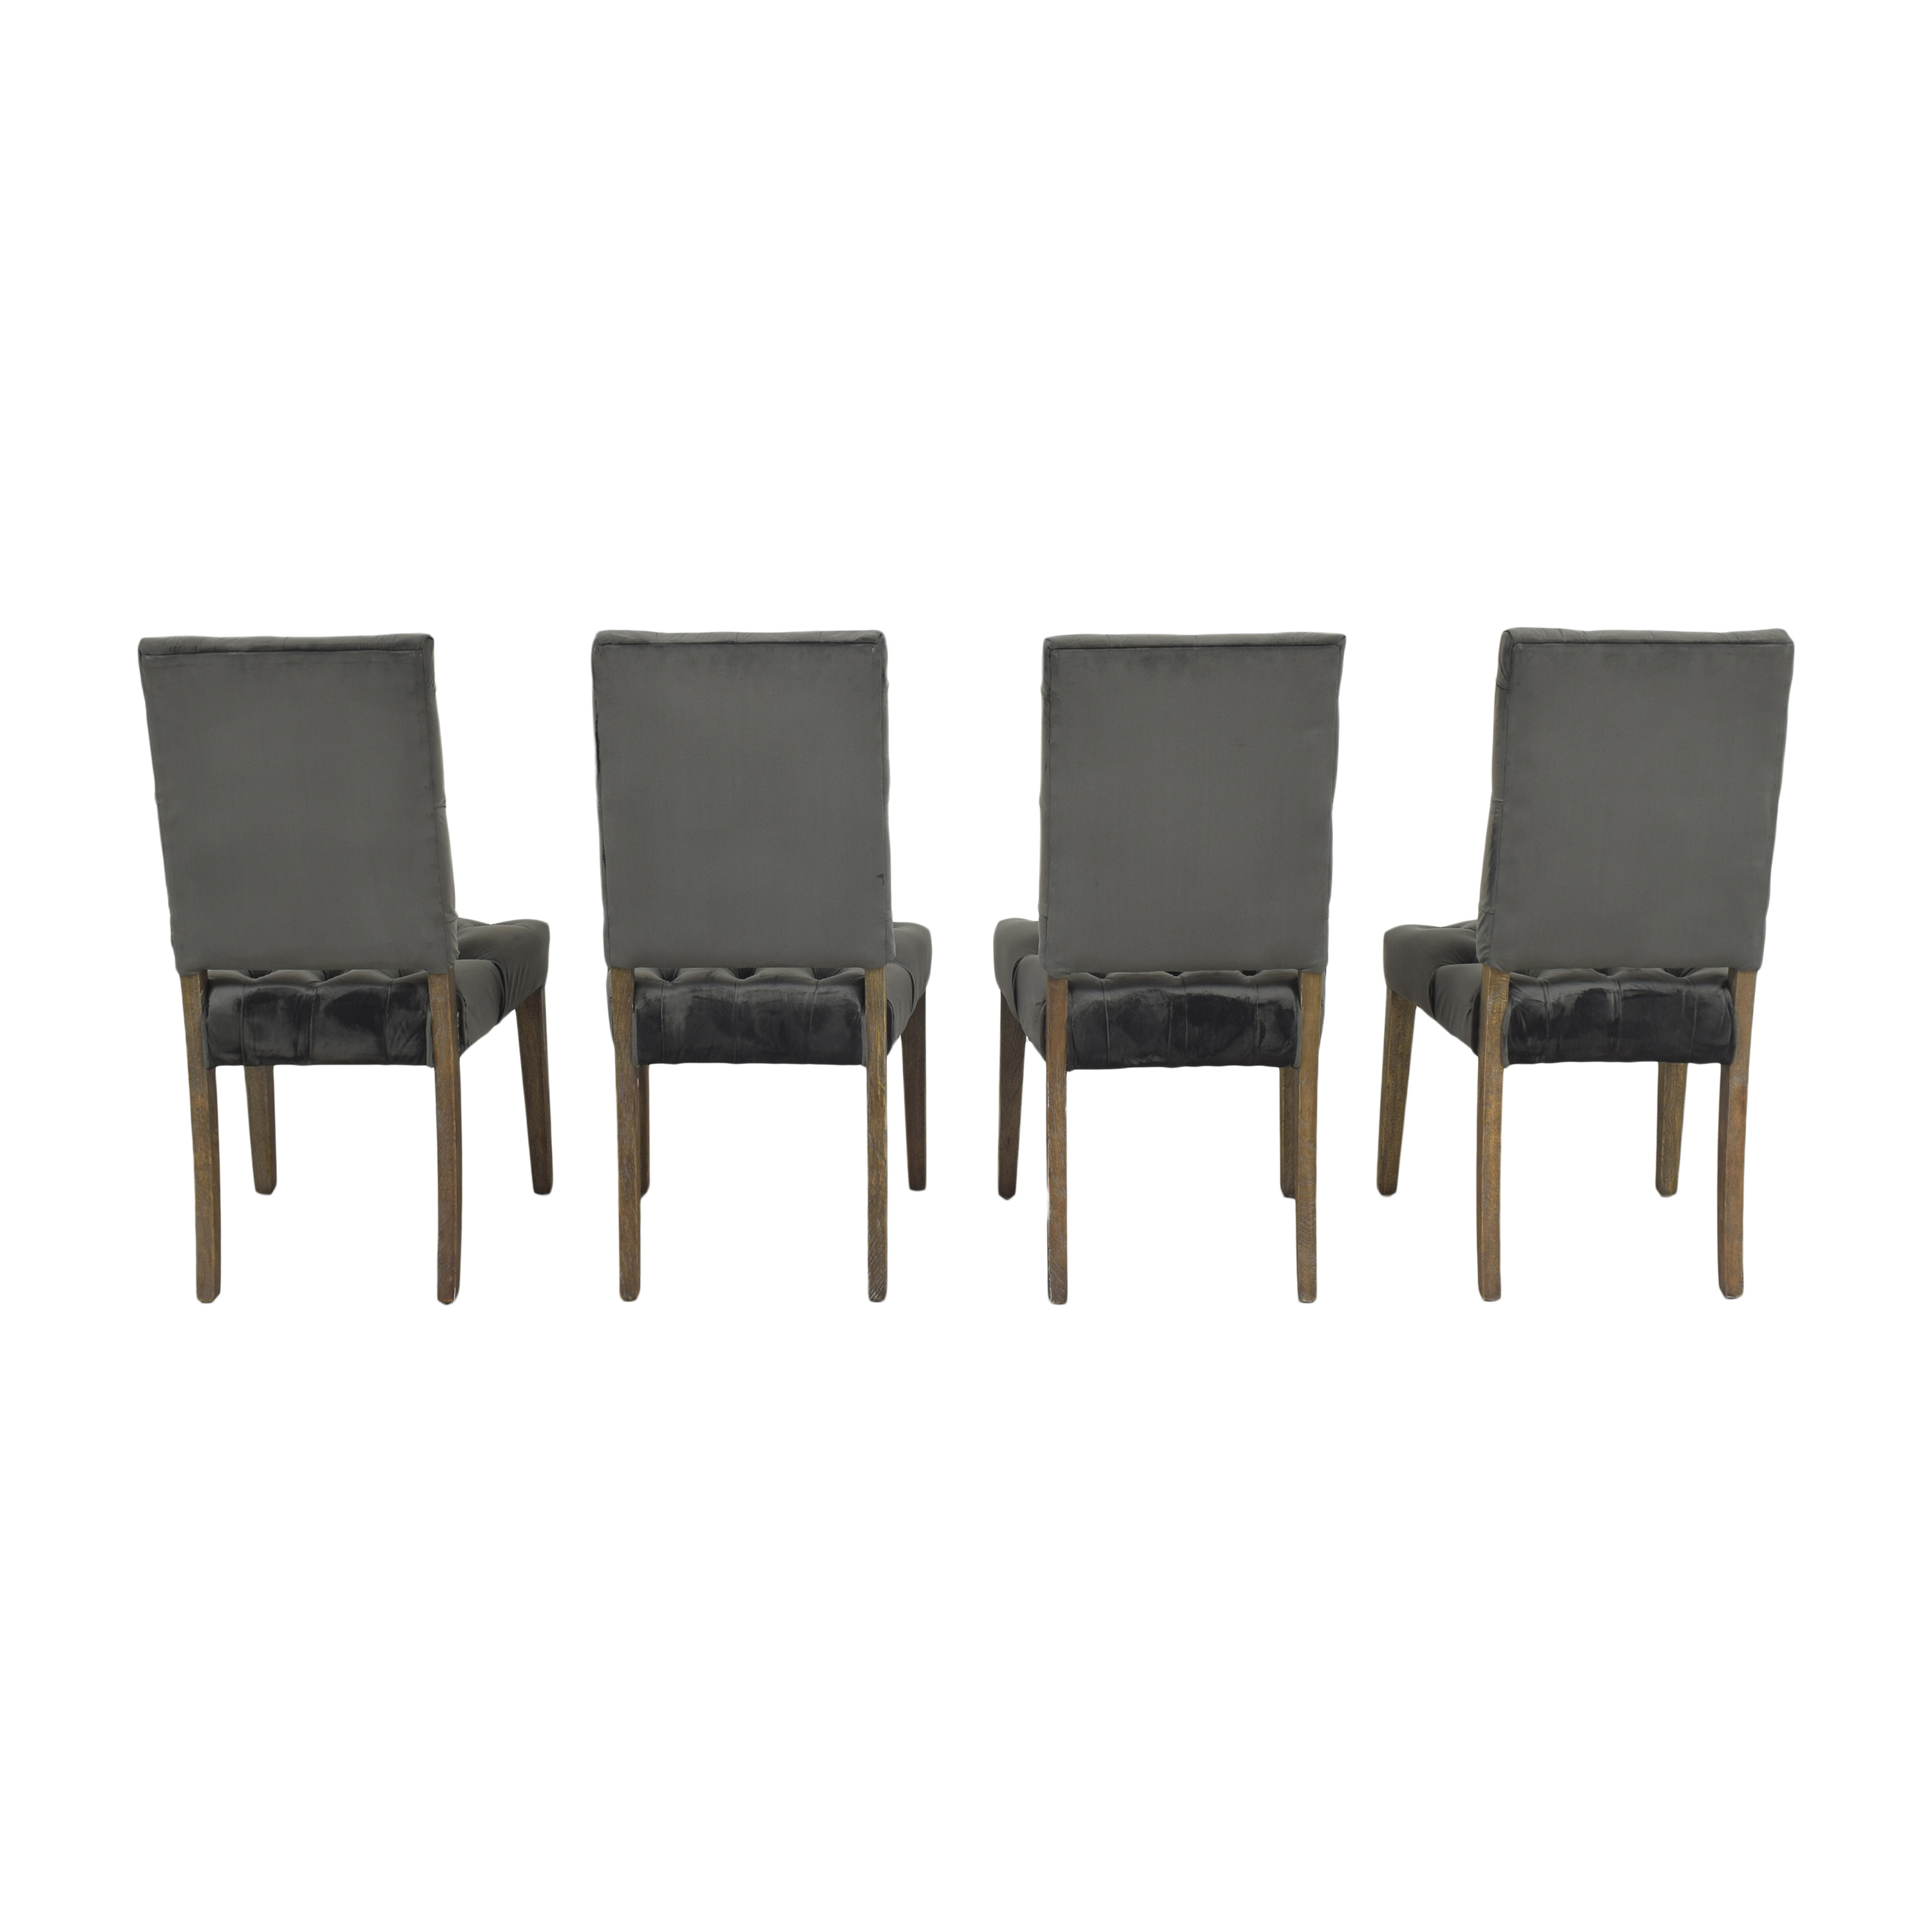 Christopher Knight Home Christopher Knight Saltillo Dining Chairs price